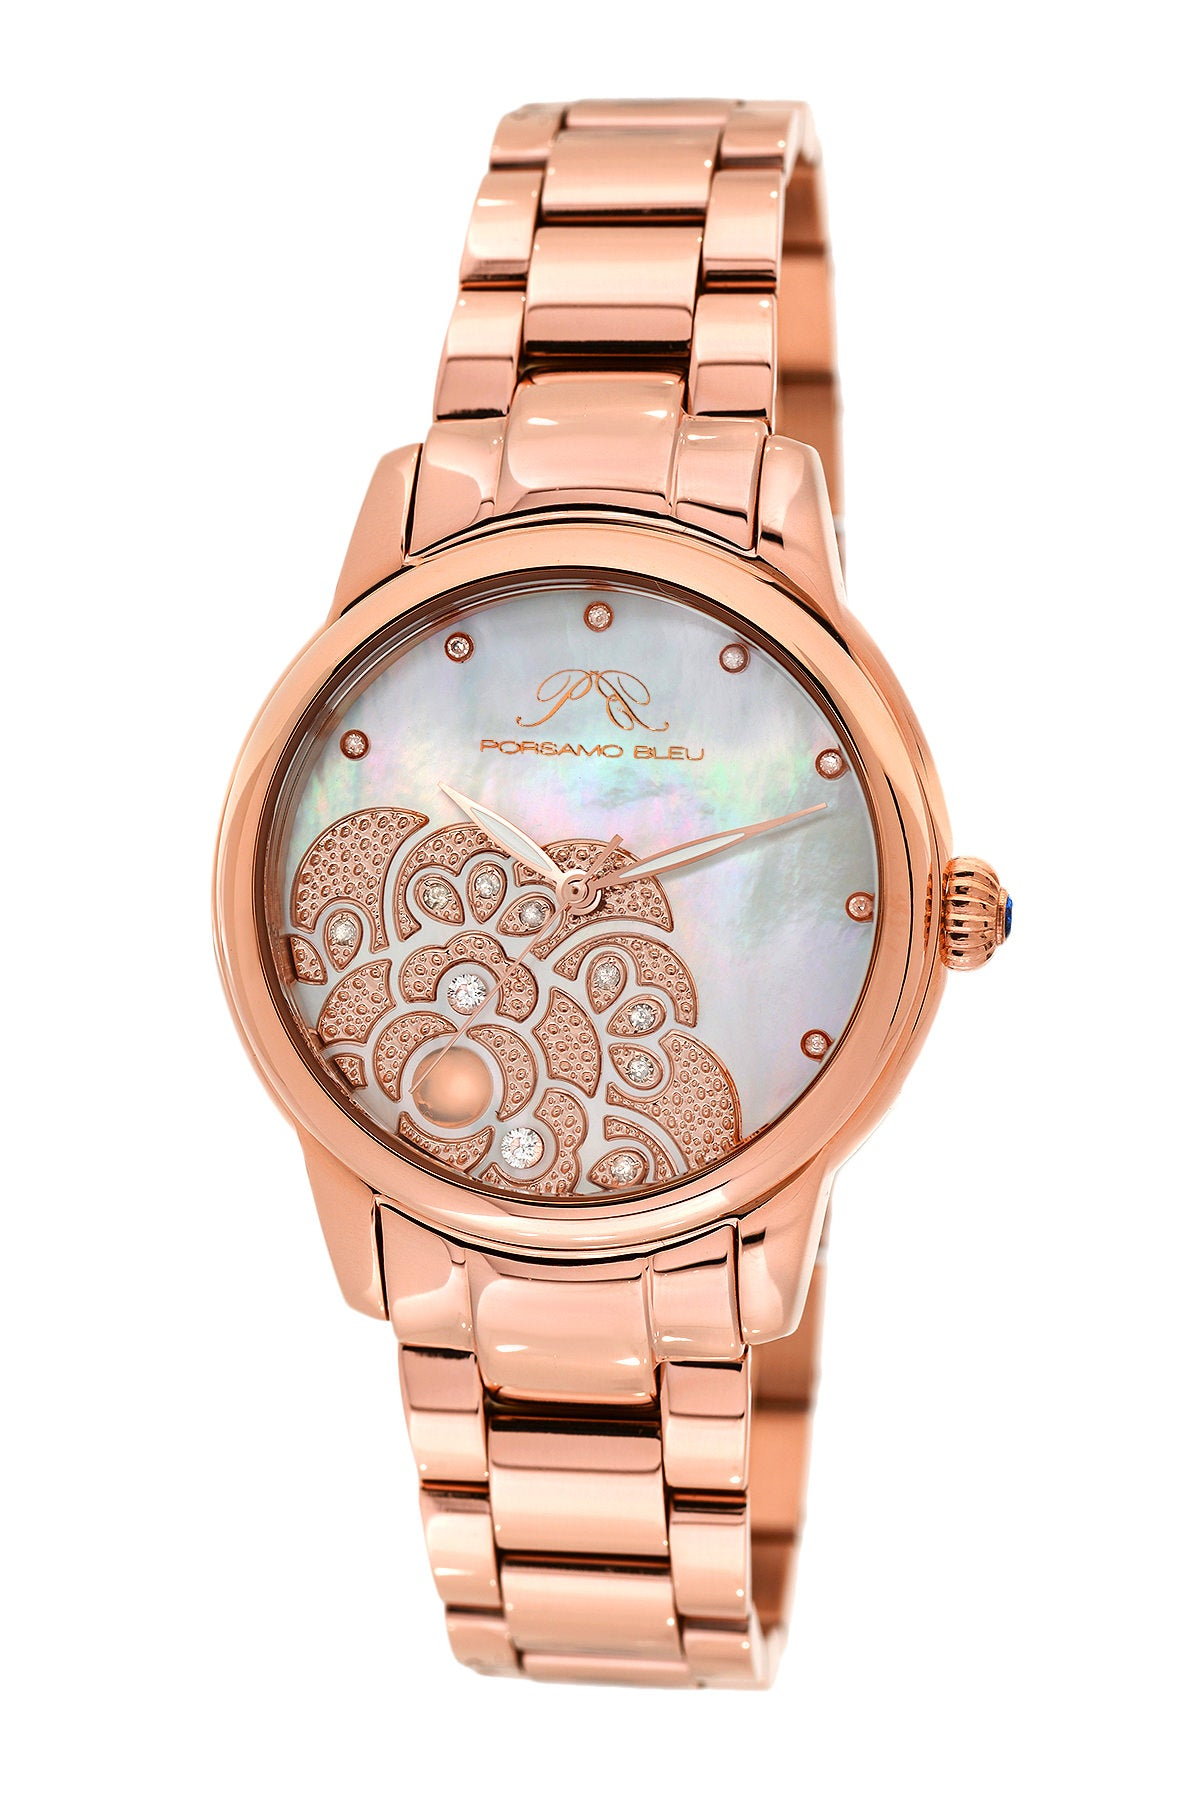 Porsamo Bleu Juliet luxury diamond, opal women's stainless steel watch, rose 701CJUS